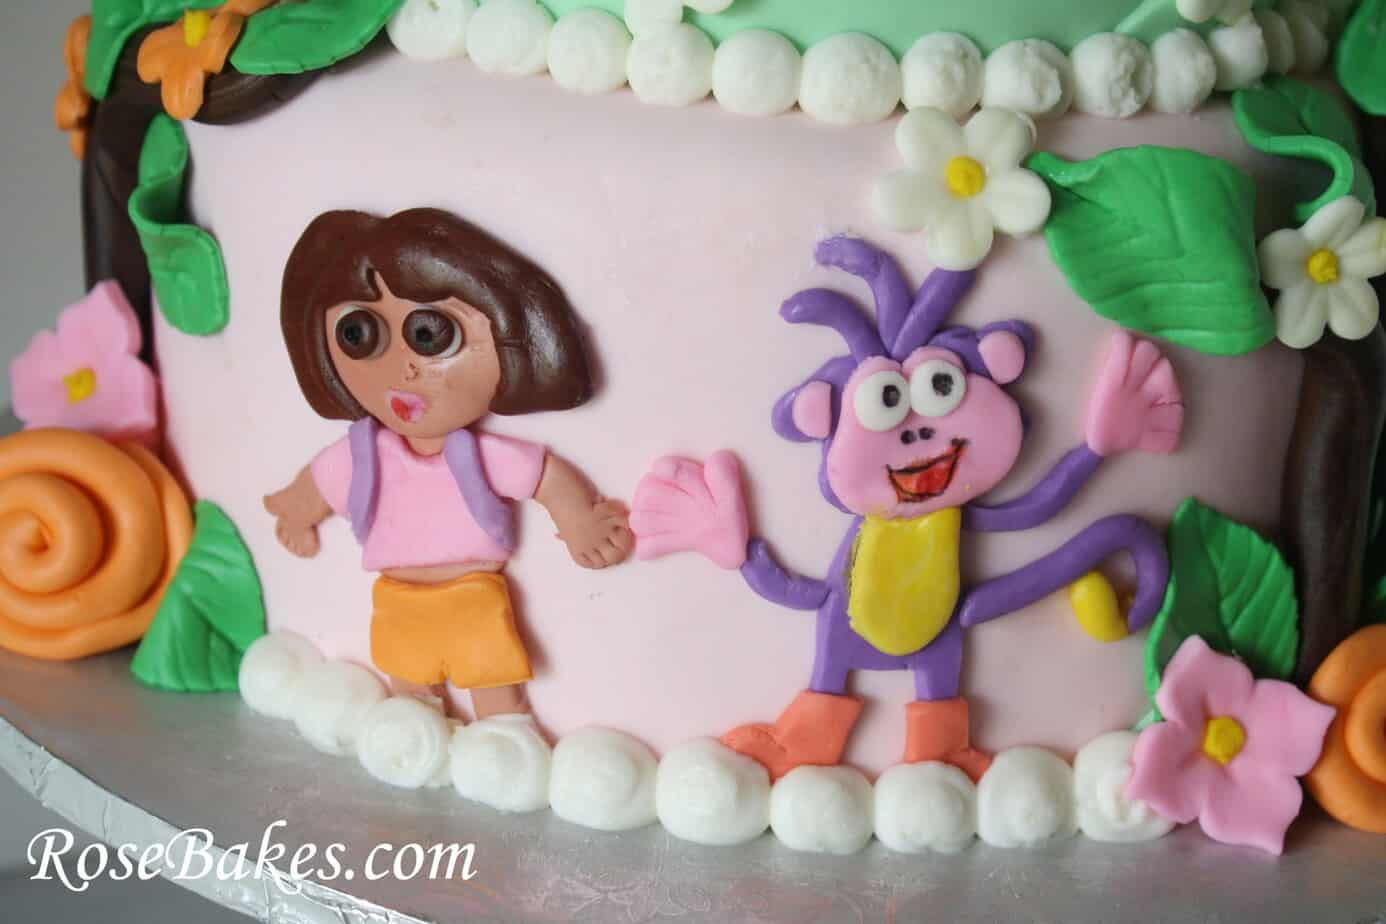 Astonishing Dora The Explorer Birthday Cake Rose Bakes Birthday Cards Printable Nowaargucafe Filternl